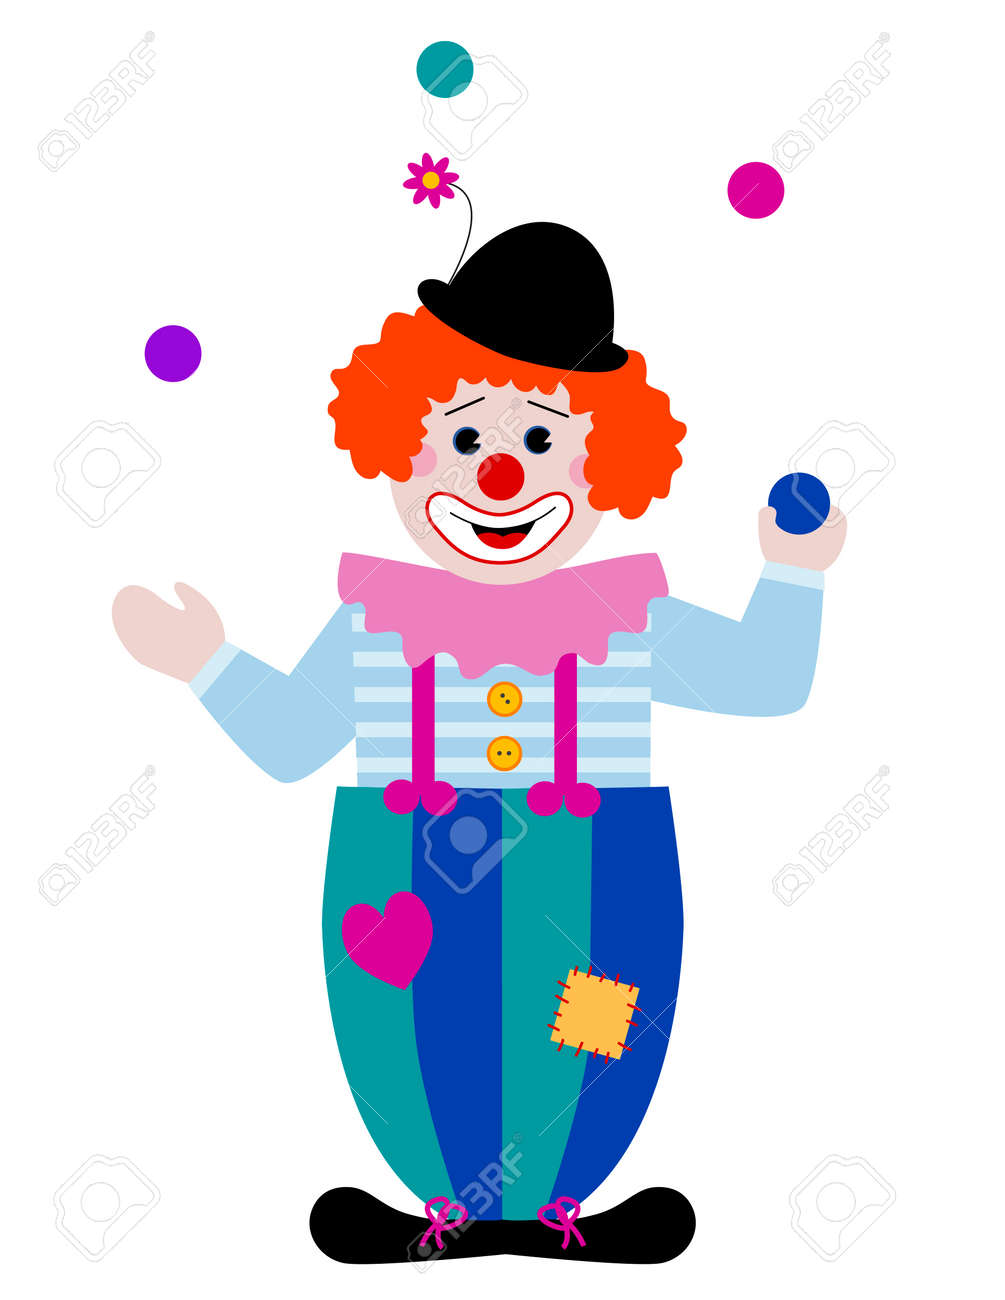 Royalty Free Clipart Image of a Man Juggling Bingo Balls in the Air #446679  | iCLIPART for Schools